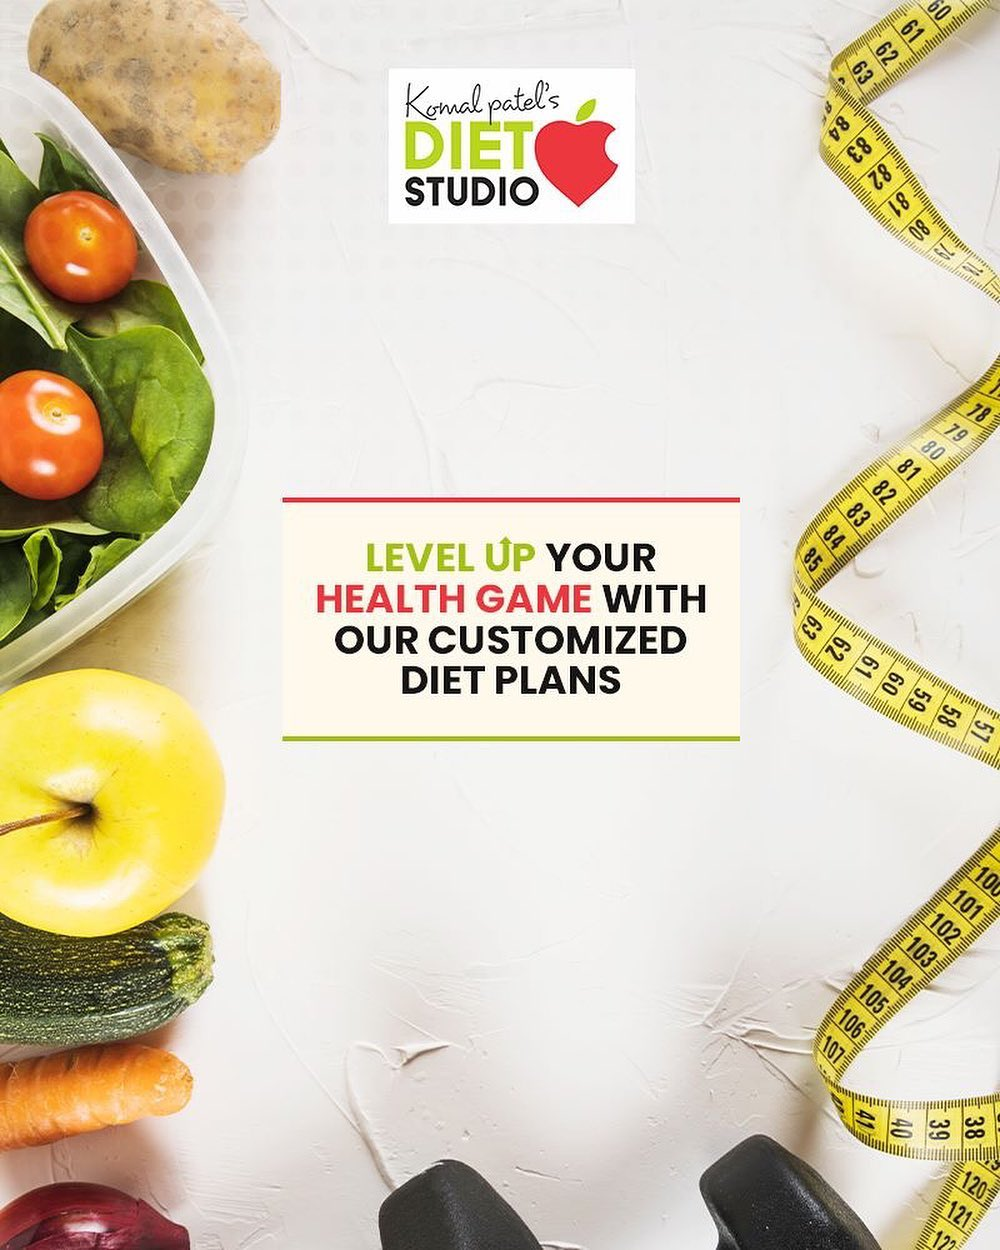 Looking for customized diet plans to achieve your goals? Achieve your desired health goals with our comprehensive guidance!  #komalpatel #diet #goodfood #eathealthy #goodhealth